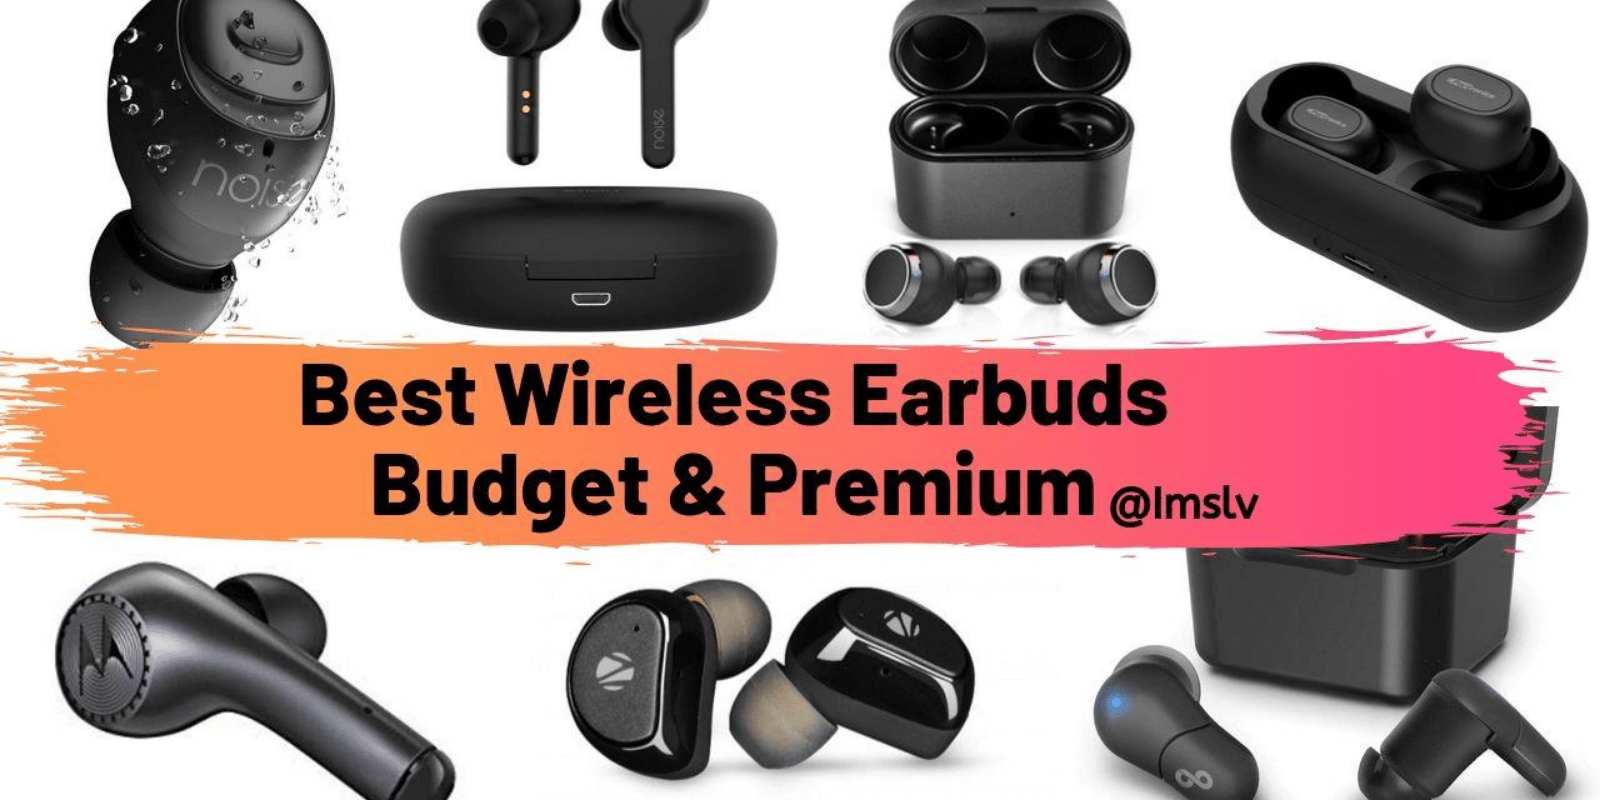 Top 5 wireless earbuds